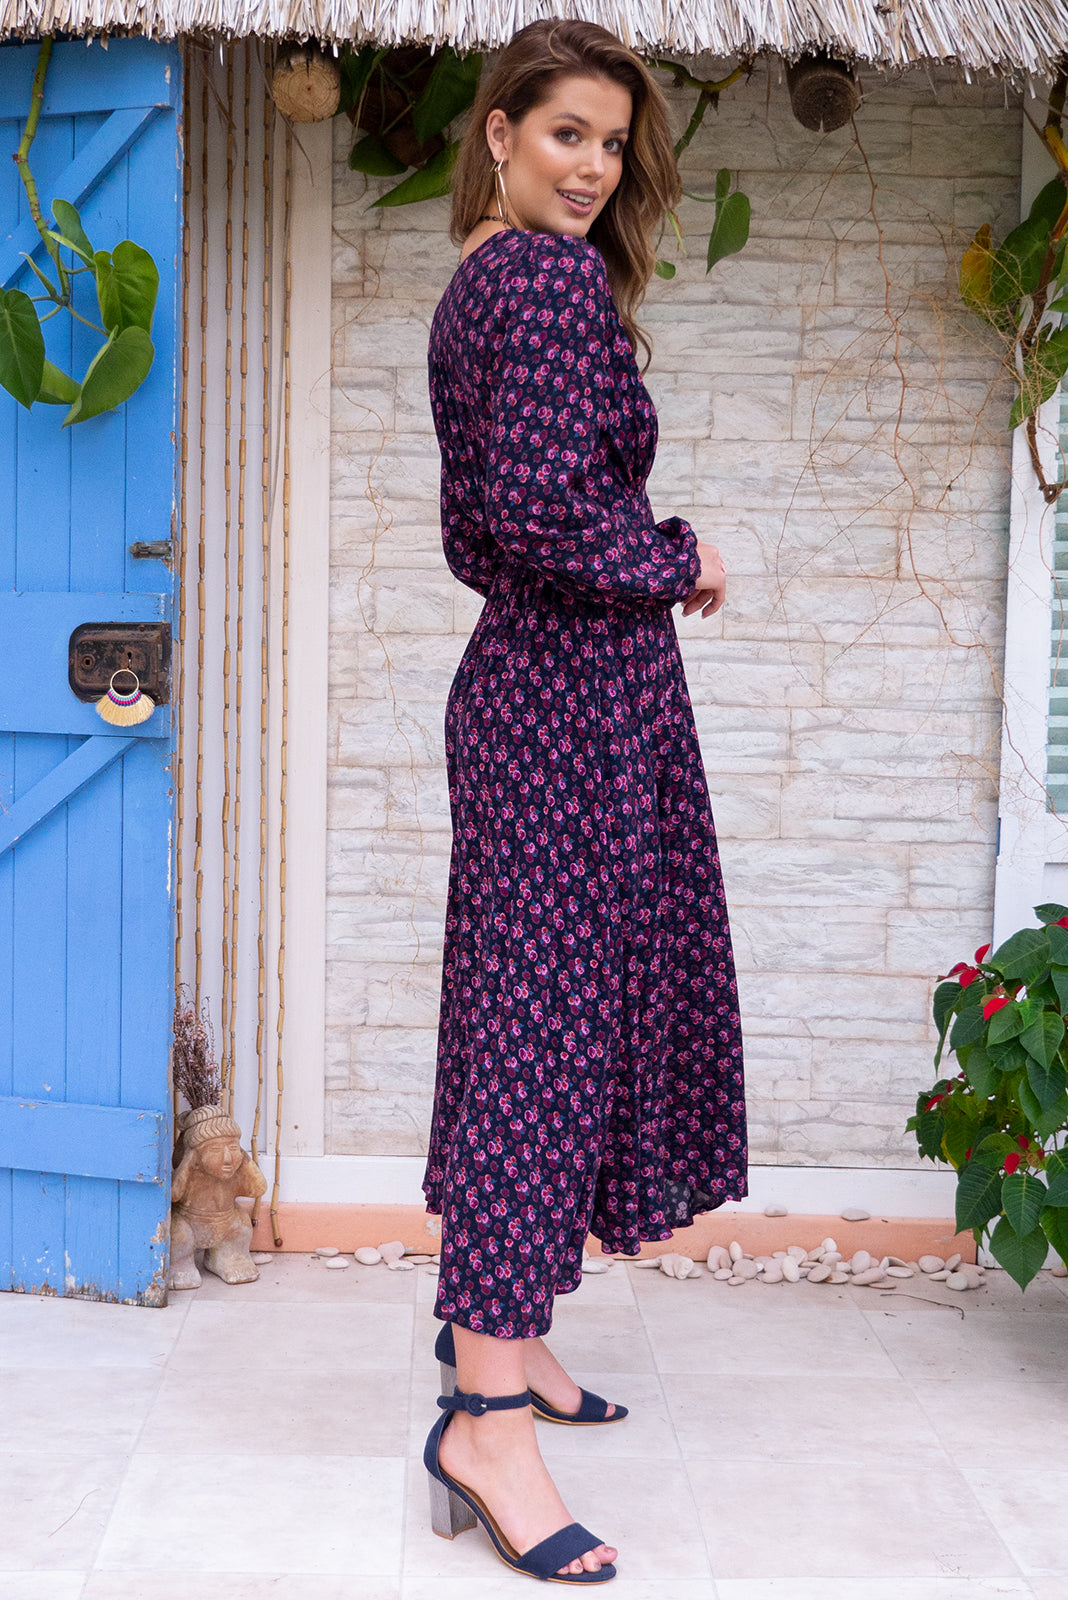 Mayfair Candy Noir Maxi dress features a vintage inspired empire line basque with elastic across the back, a full long sleeve with an elasticated cuff, a deep v neck the fabric is made from a soft woven rayon in a dark purple and pink floral print